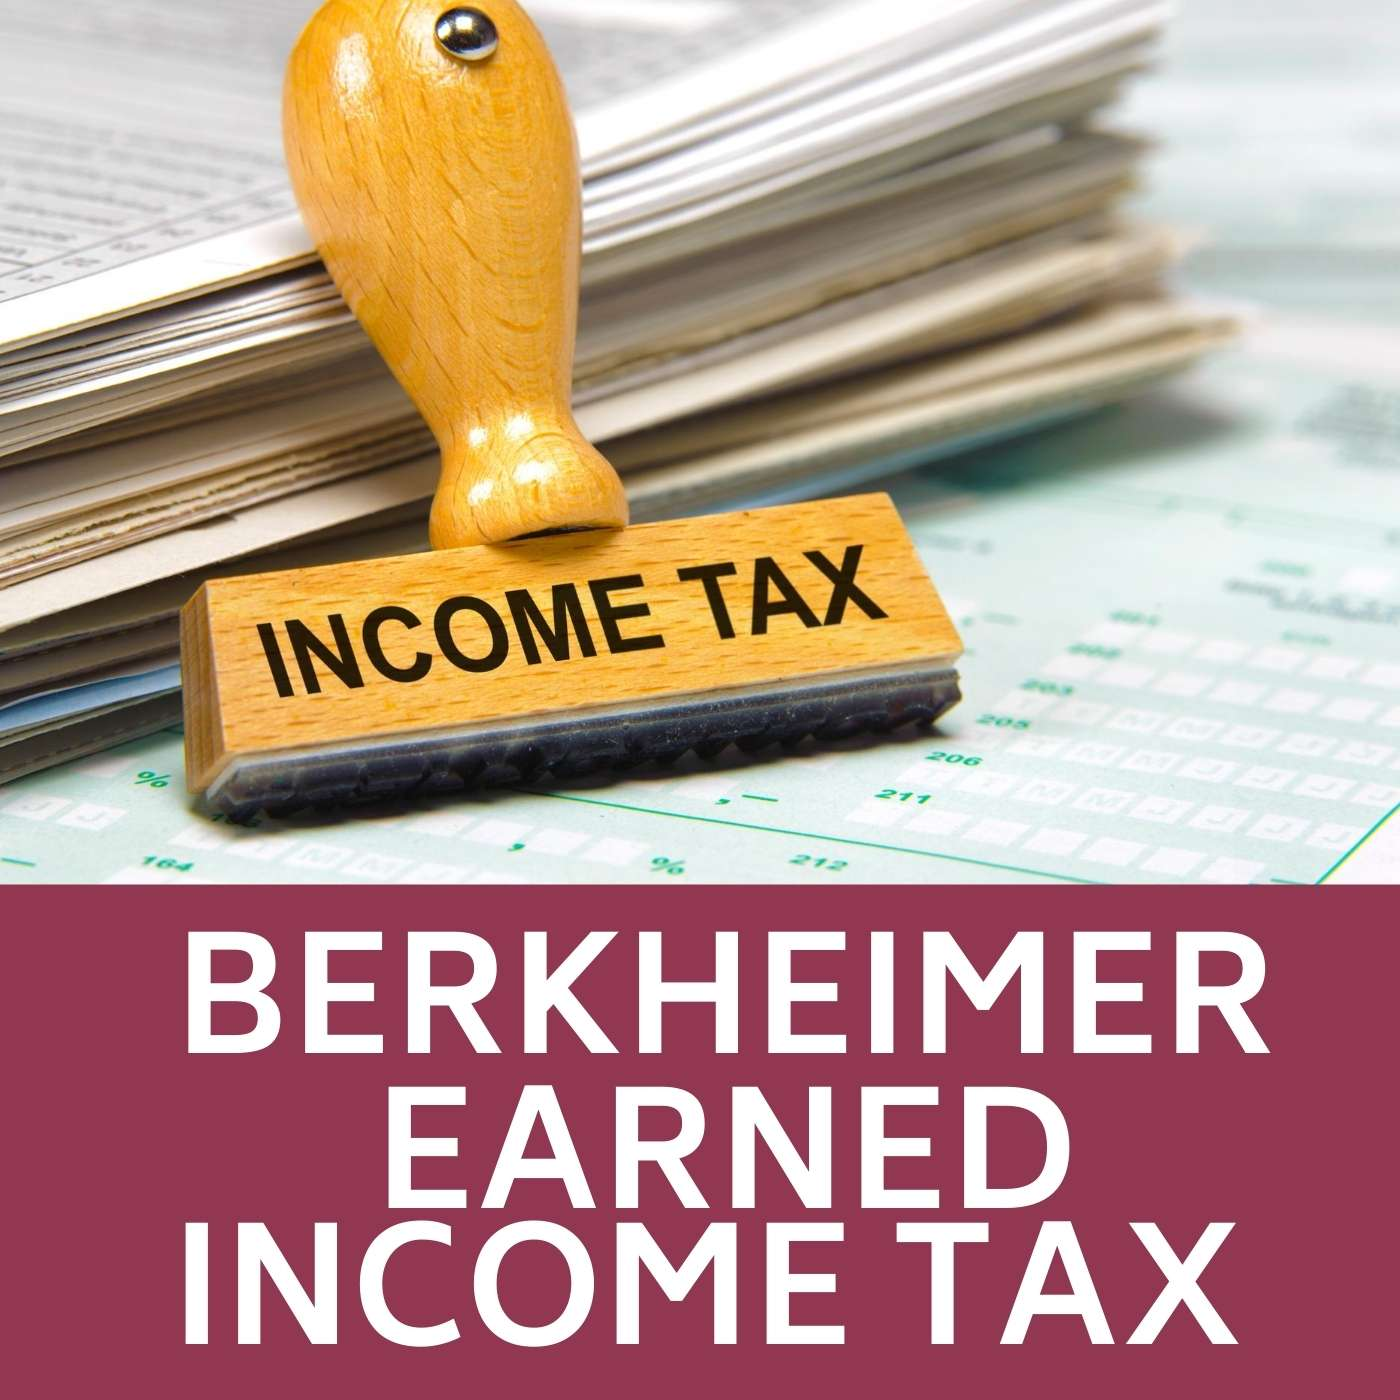 Earned income tax stamp that links to information about Berkenheimer Earned Income Tax at https://www.hab-inc.com/